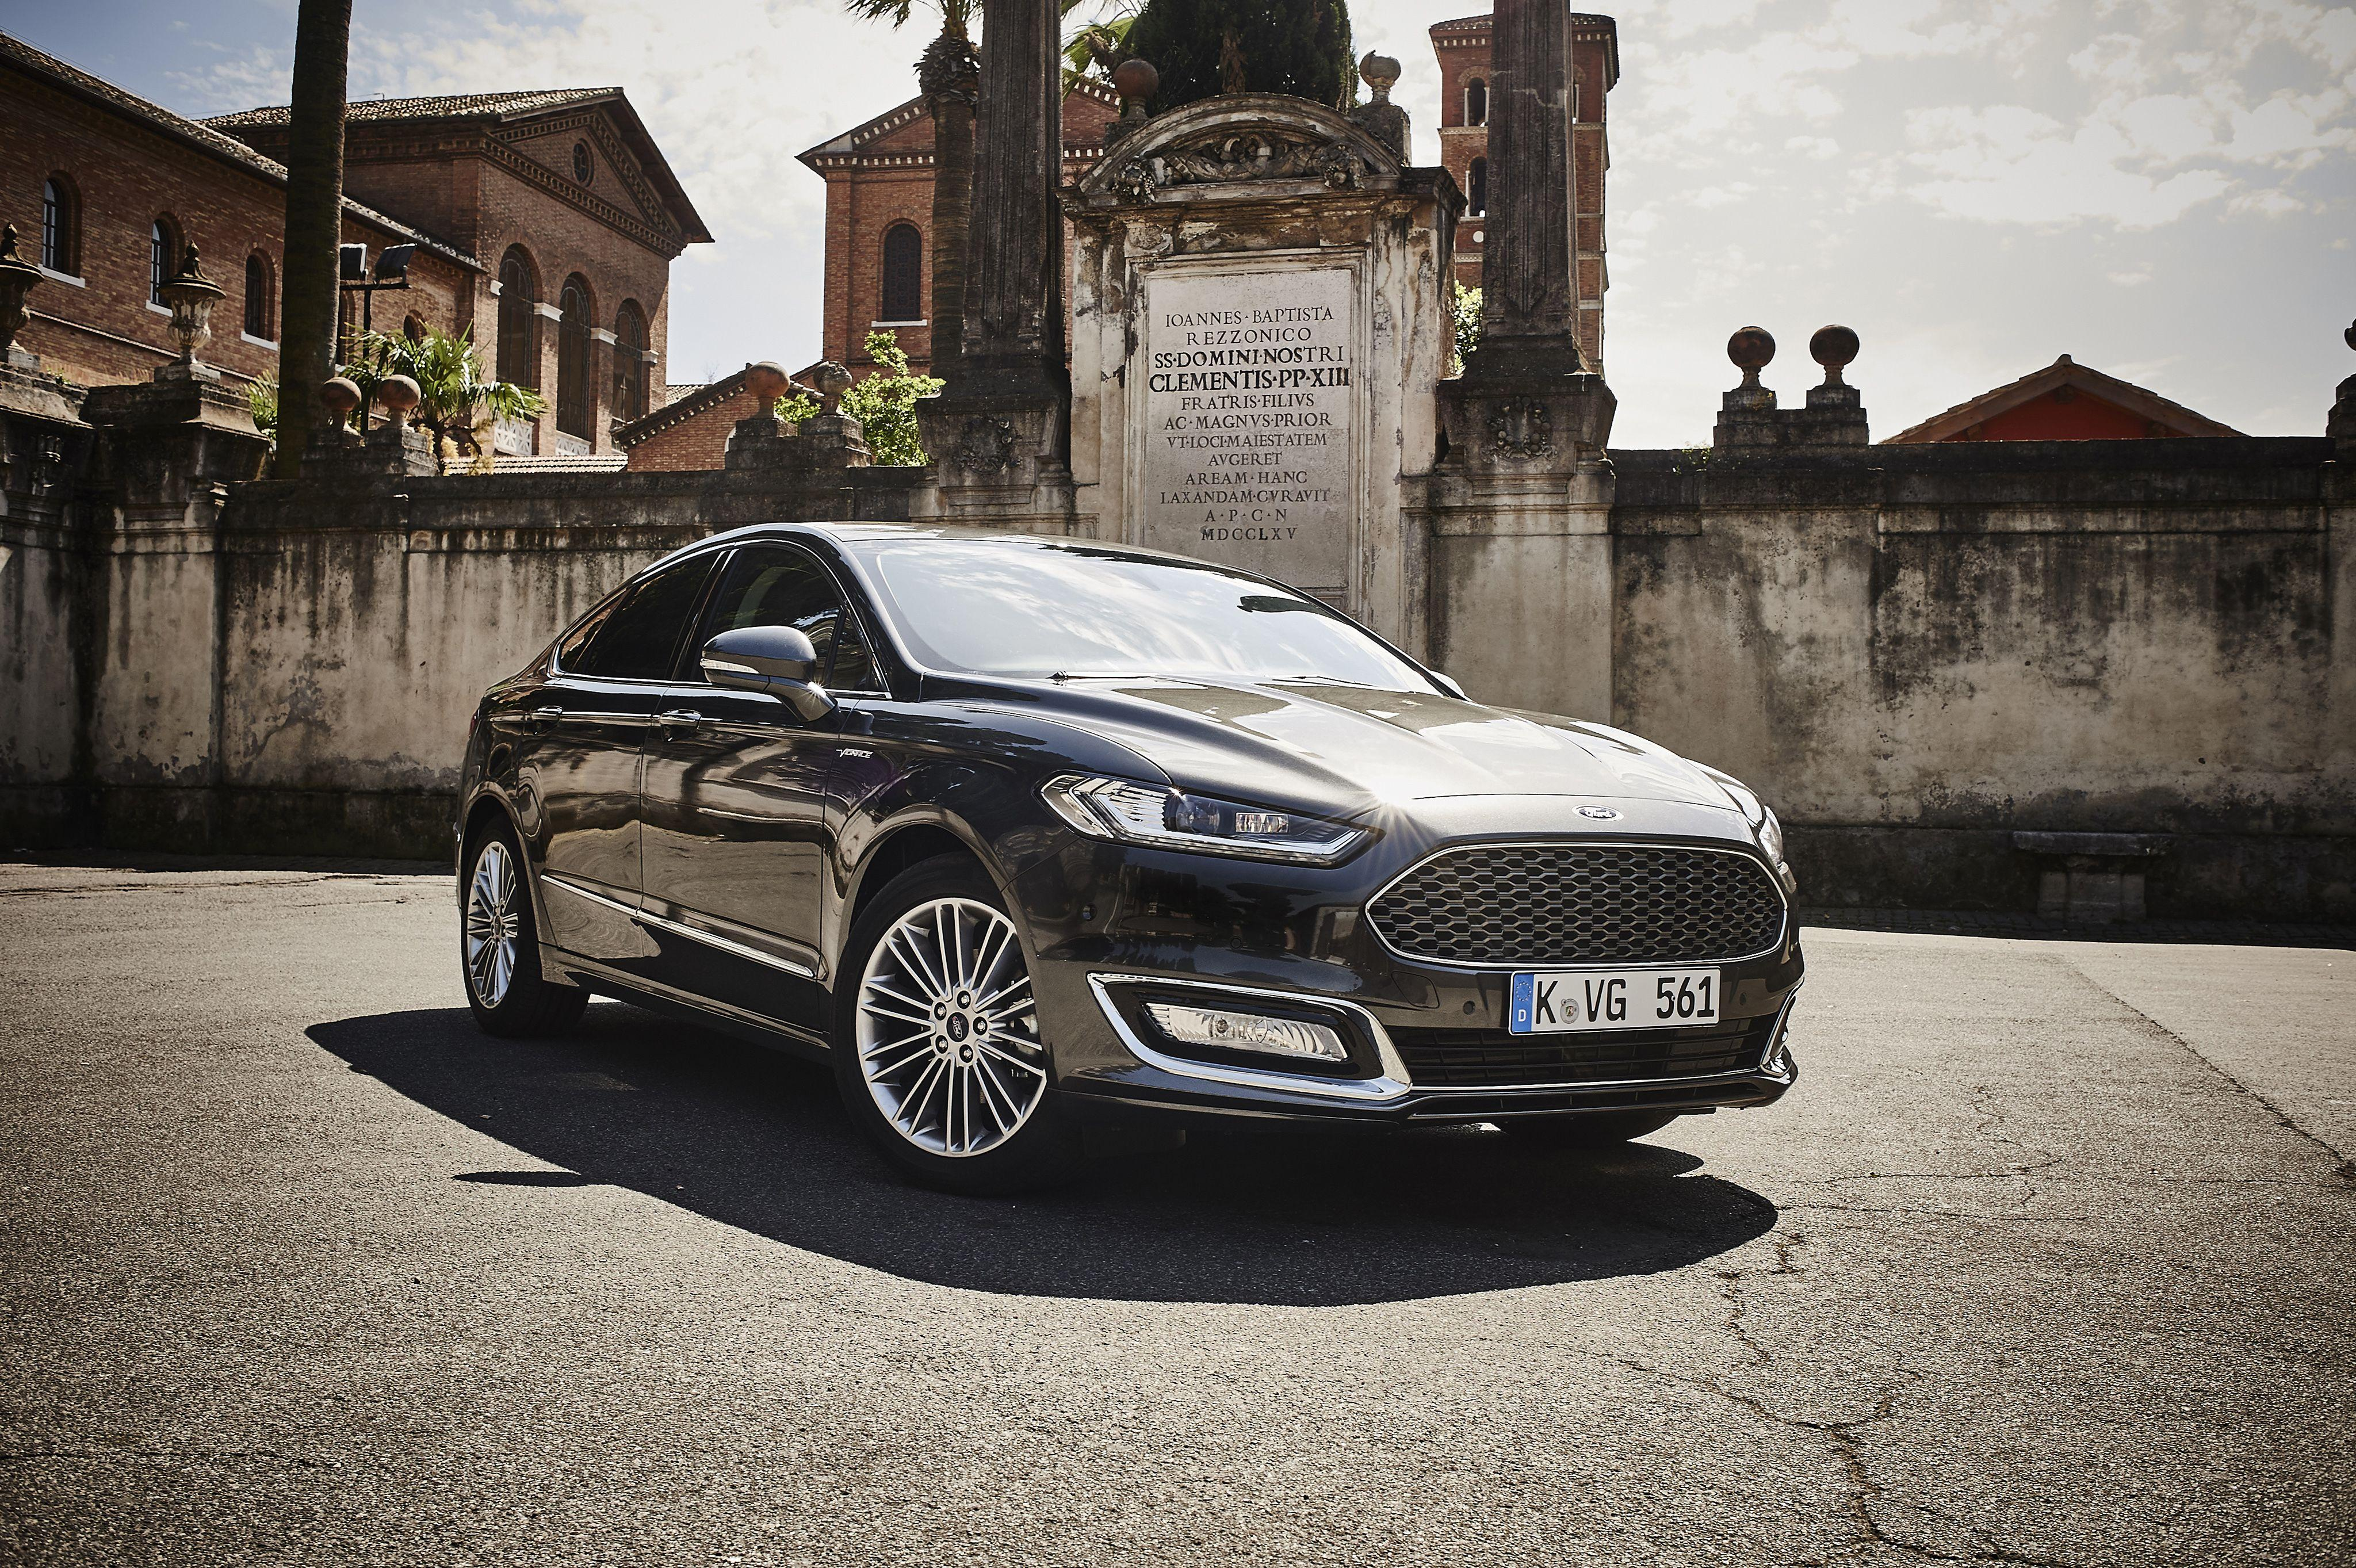 2015 Ford Mondeo Vignale 4k Ultra HD Wallpapers